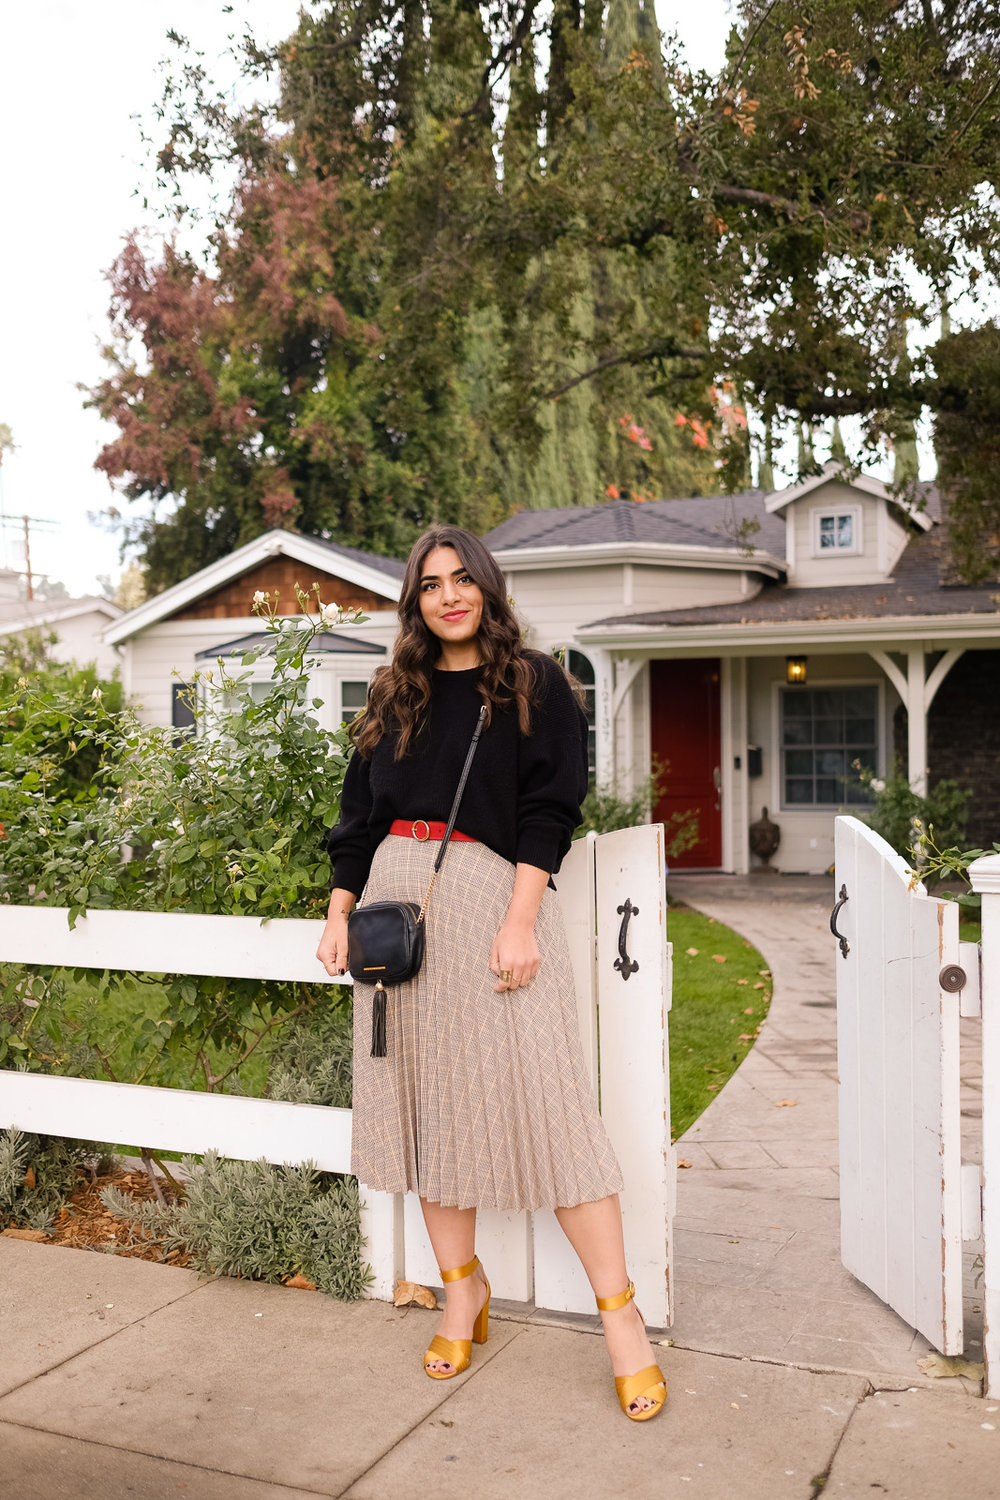 Perfect Fall outfit pleated skirt and sweater